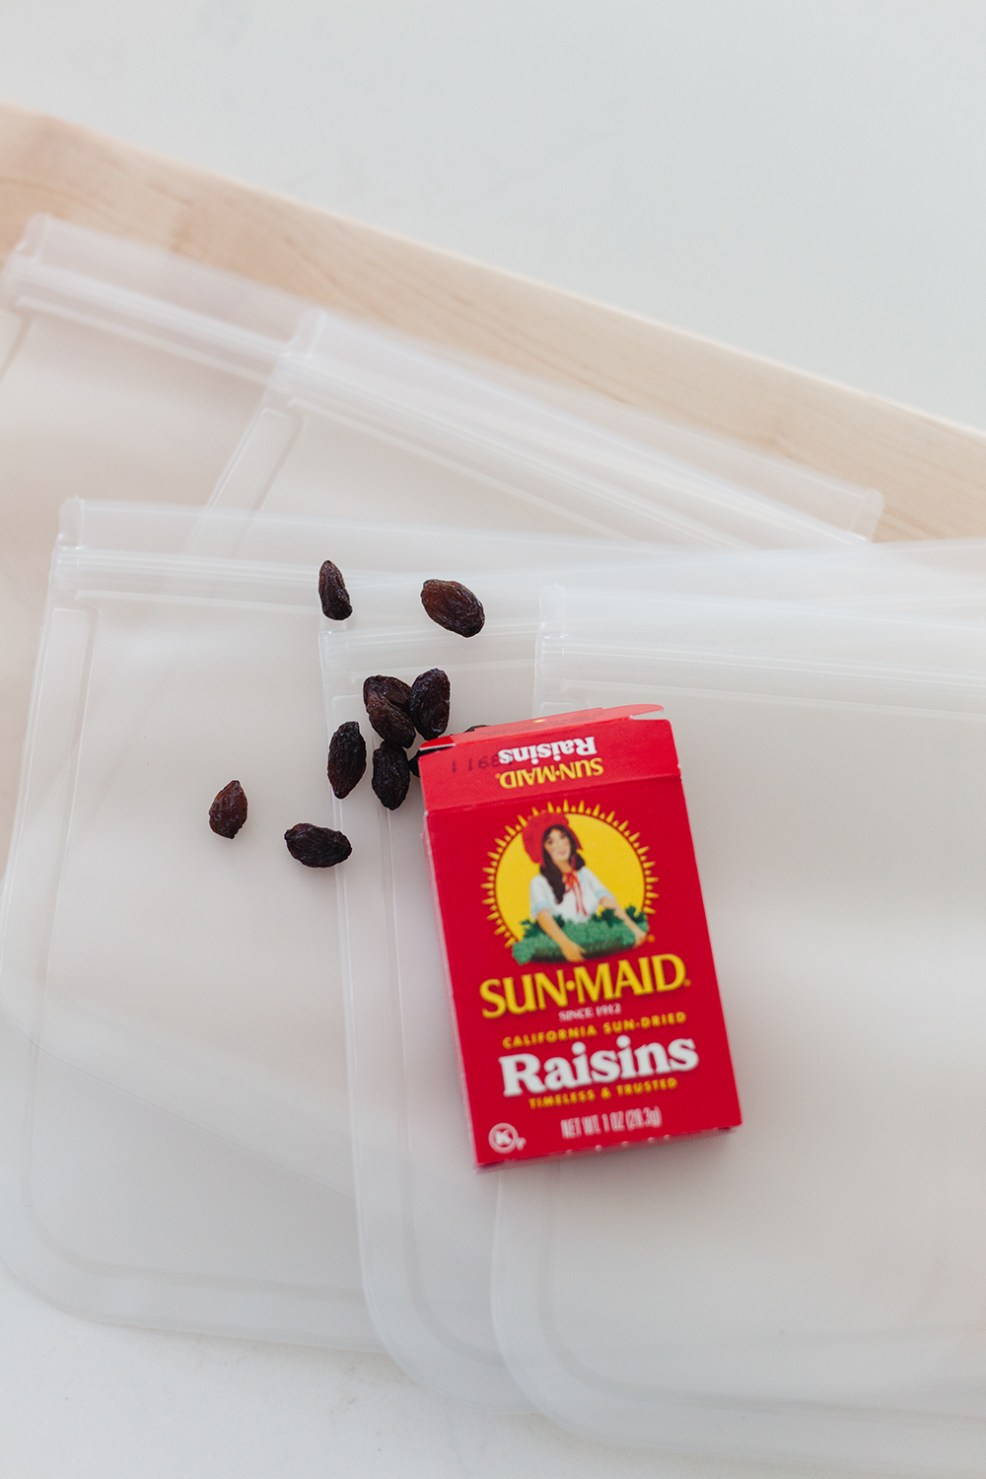 Wow and Now by popular US life an style blog, E. Interiors Design: image of a box of Sun-Maid Raisins resting on top of some re-sealable bags.